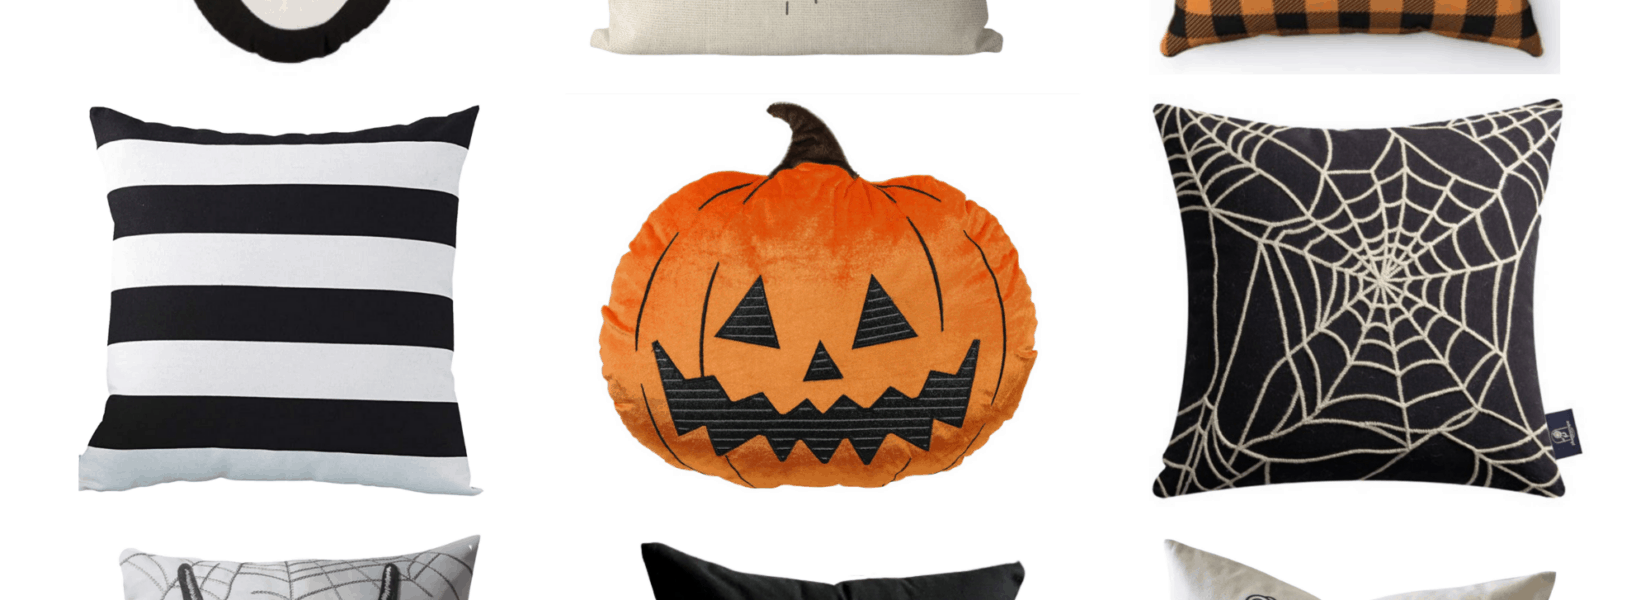 Trendy Halloween Pillows: 40 Wicked Ideas to Decorate Your Home